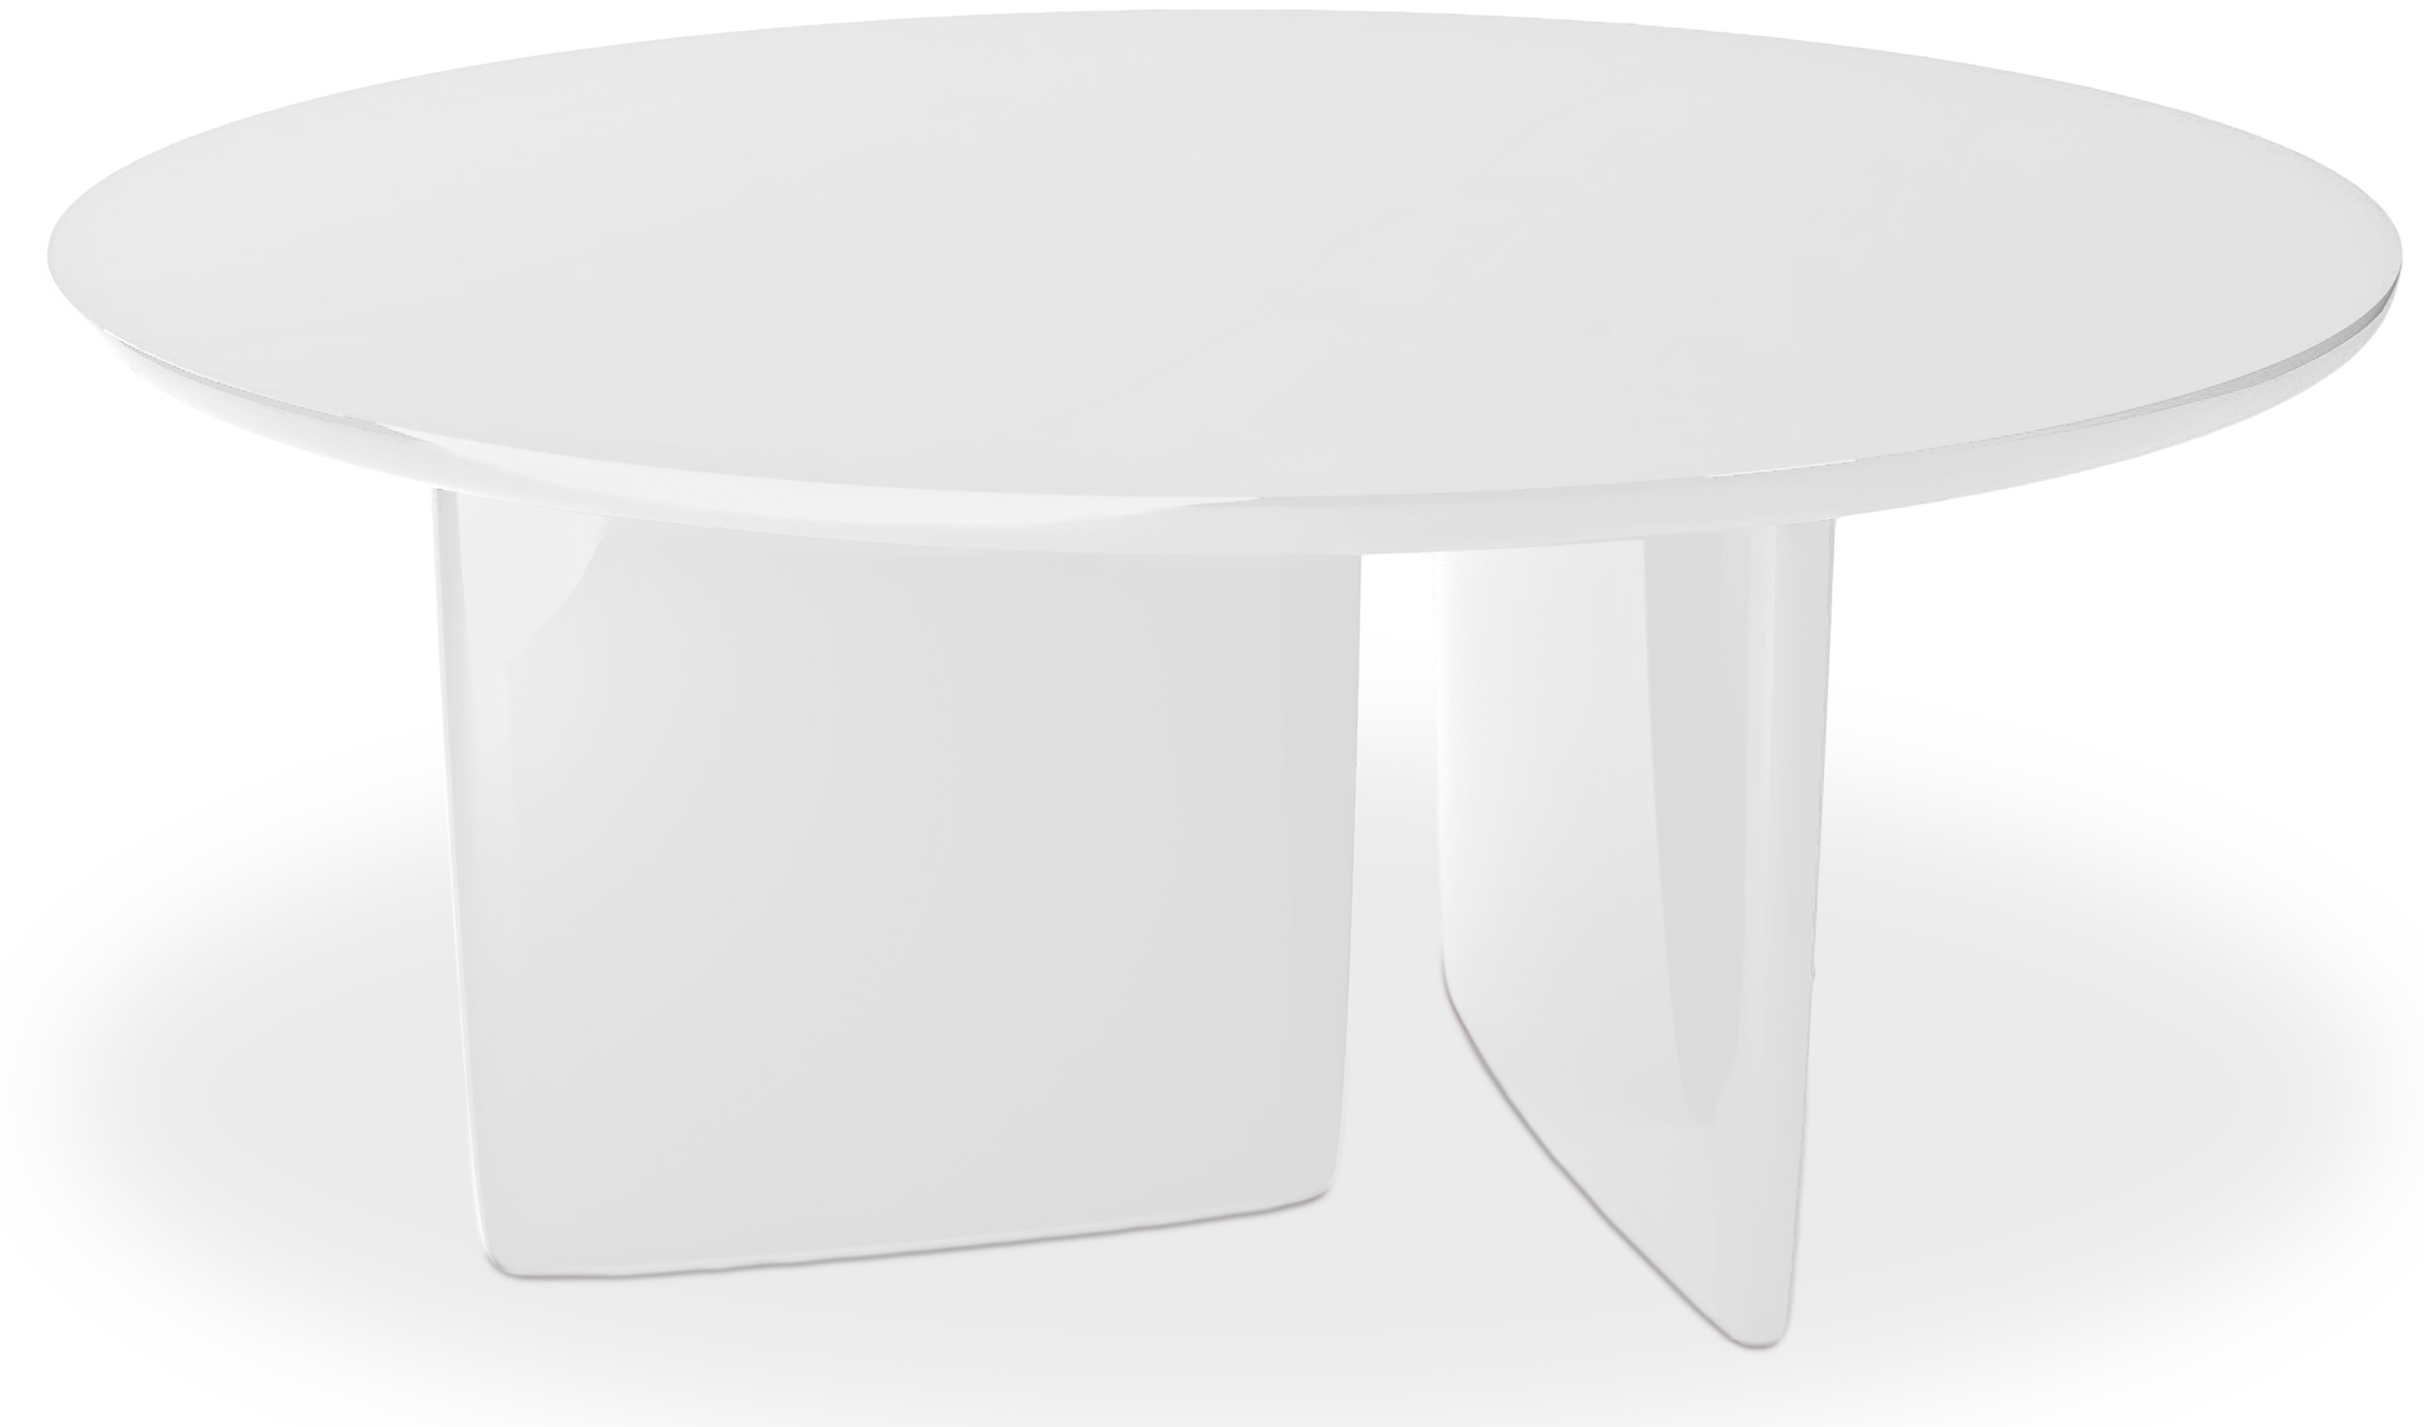 Table manger ronde laqu e blanc kare for Table ronde a manger